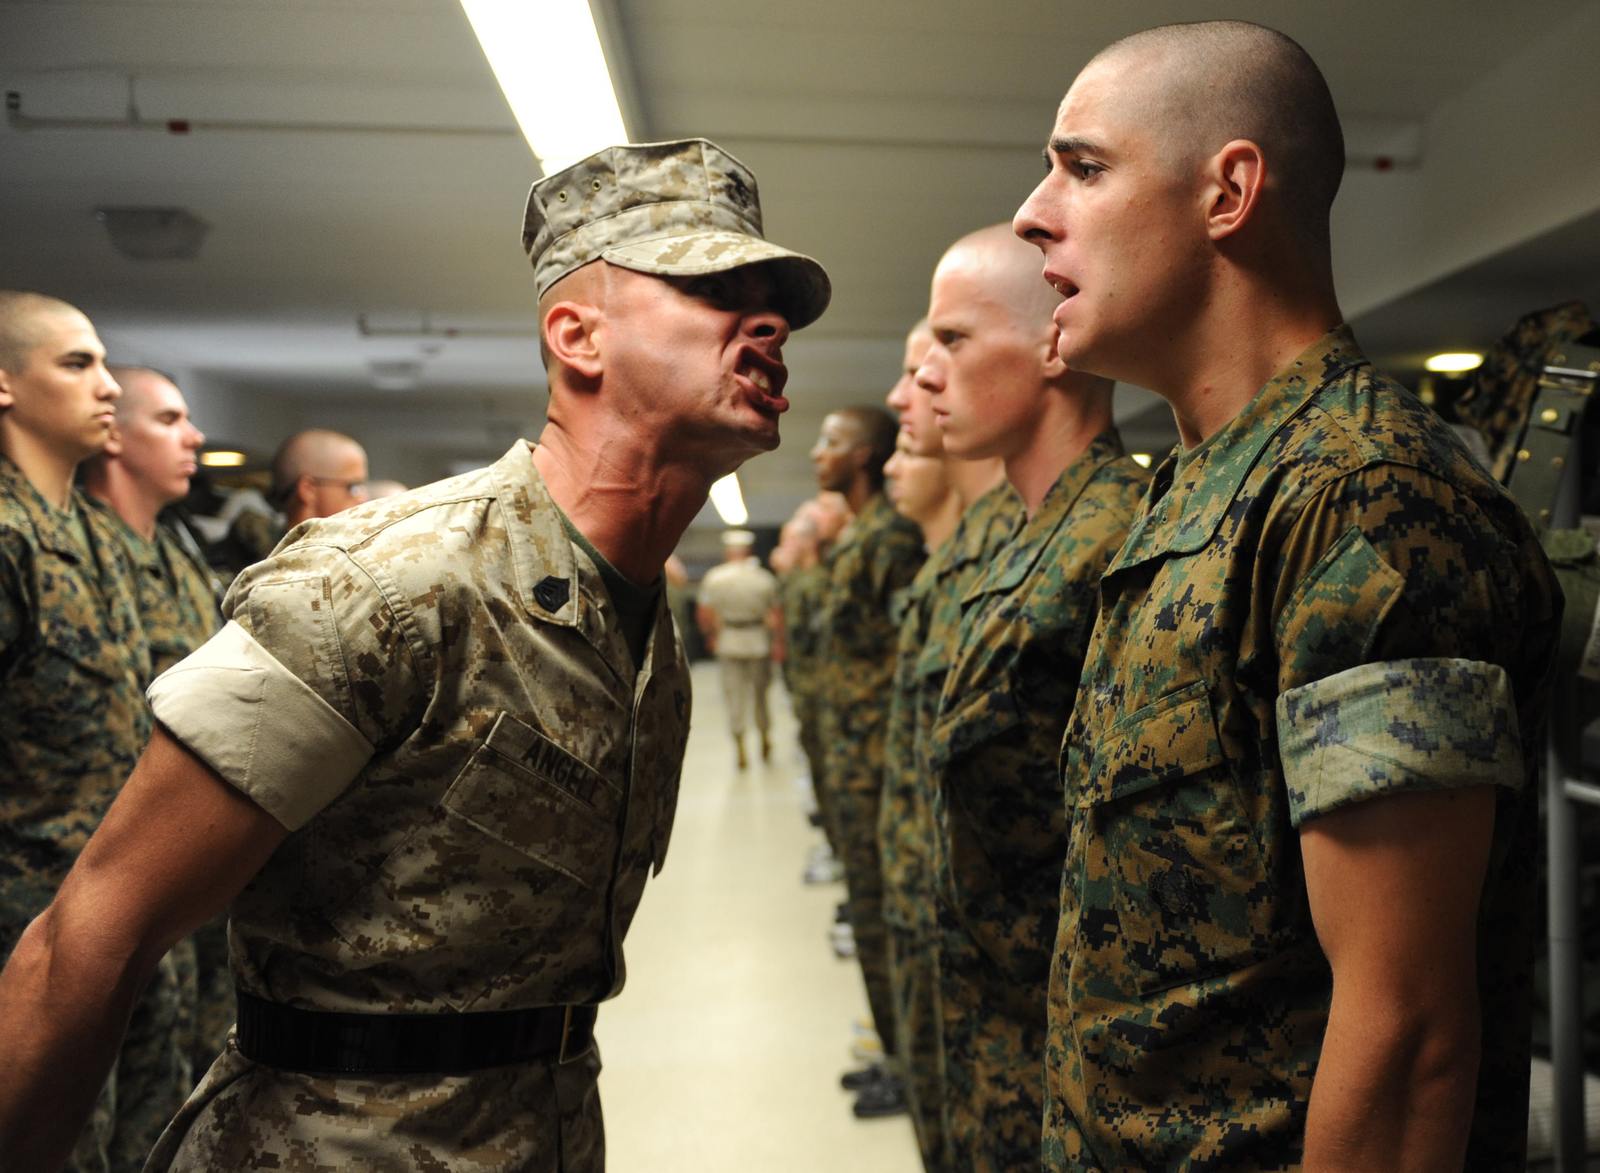 drill_instructor_at_the_officer_candidate_school-jpg.36543_Train to win_Weapons & Tools_Squat the Planet_7:03 PM